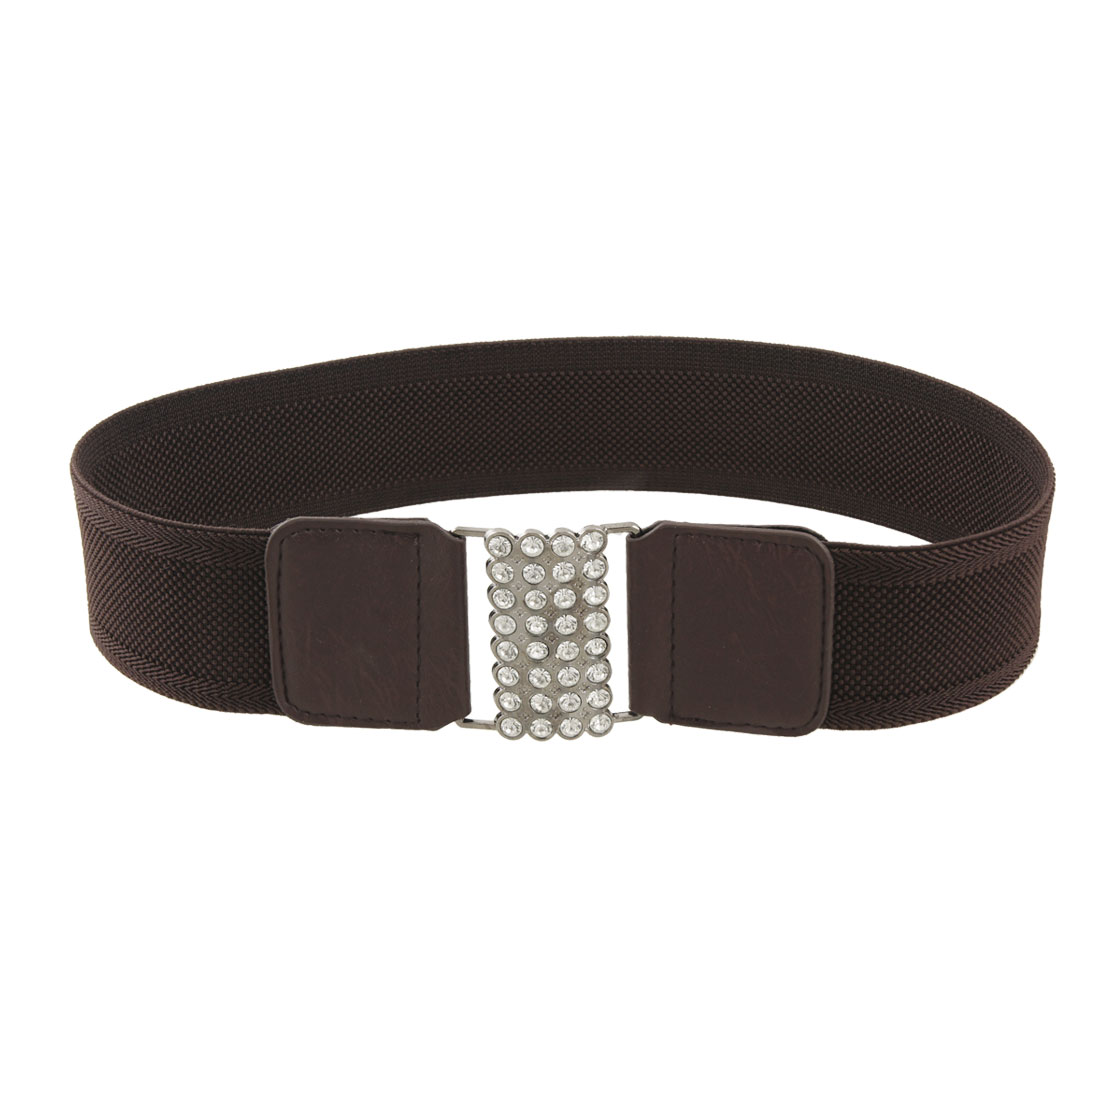 Rhinestone Decor Metal Buckle Dark Brown Elastic Cinch Belt for Woman